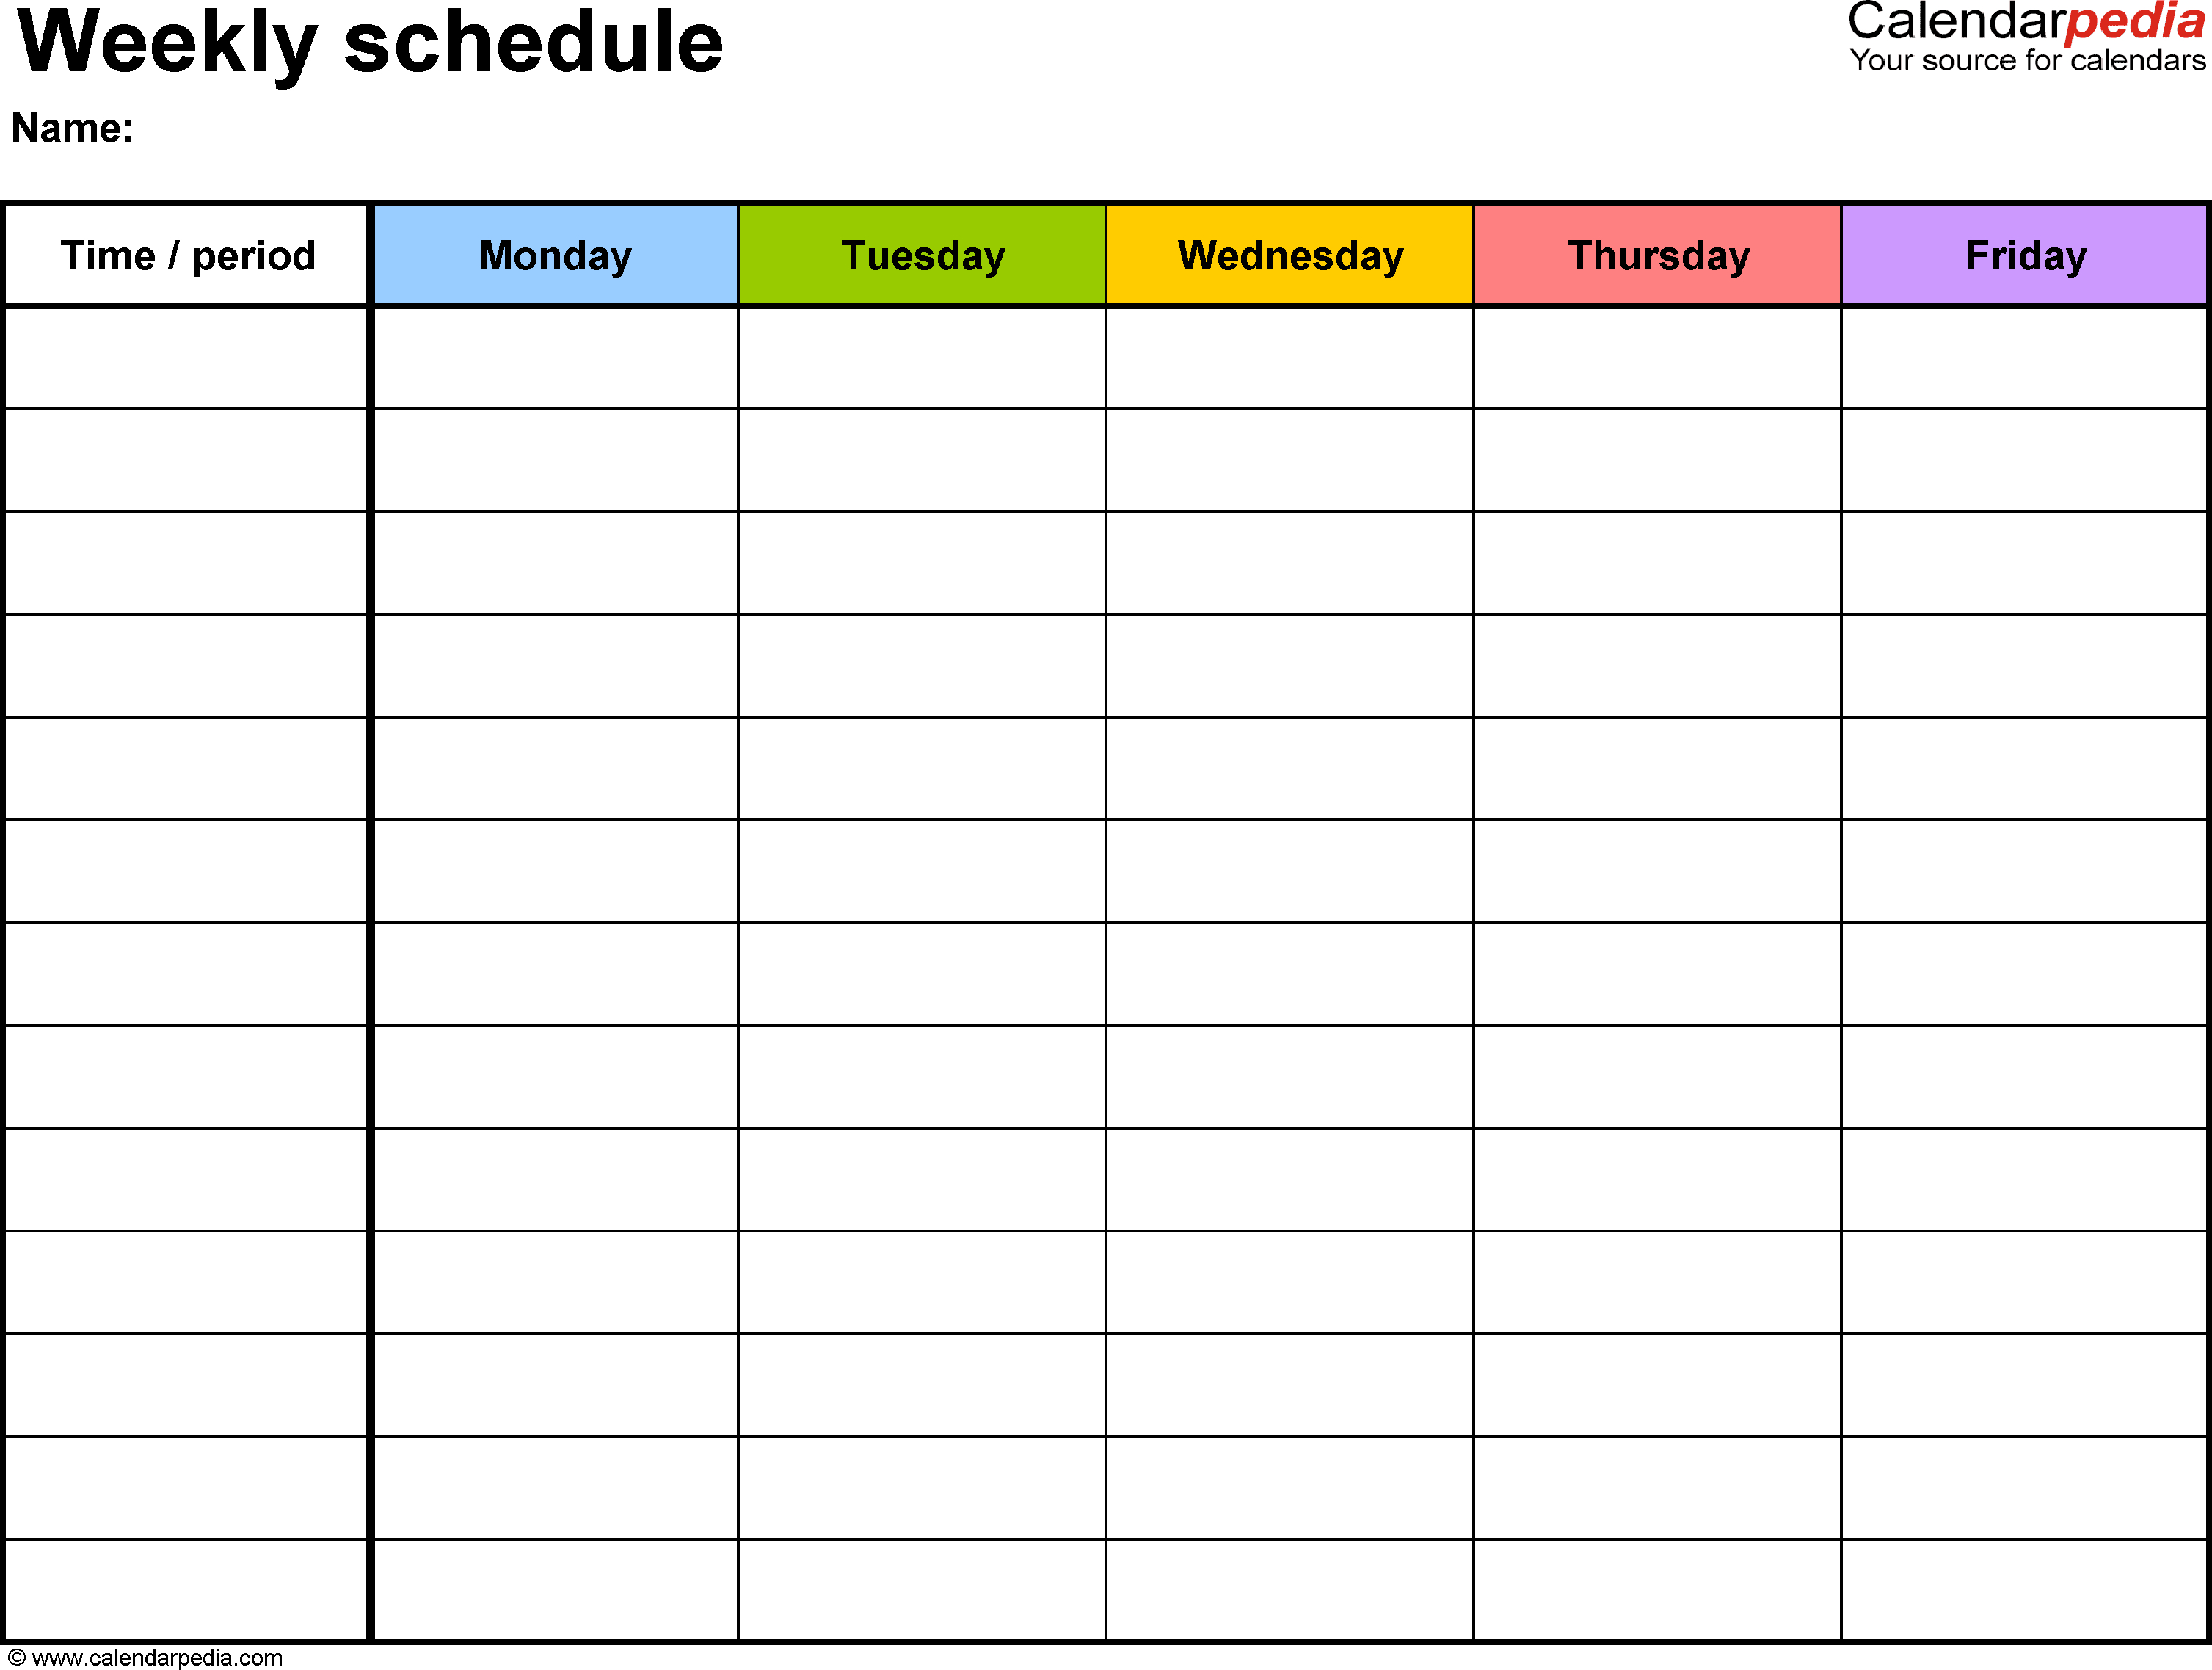 Free Weekly Schedule Templates For Word - 18 Templates for Blank Printable Weekly Calendar